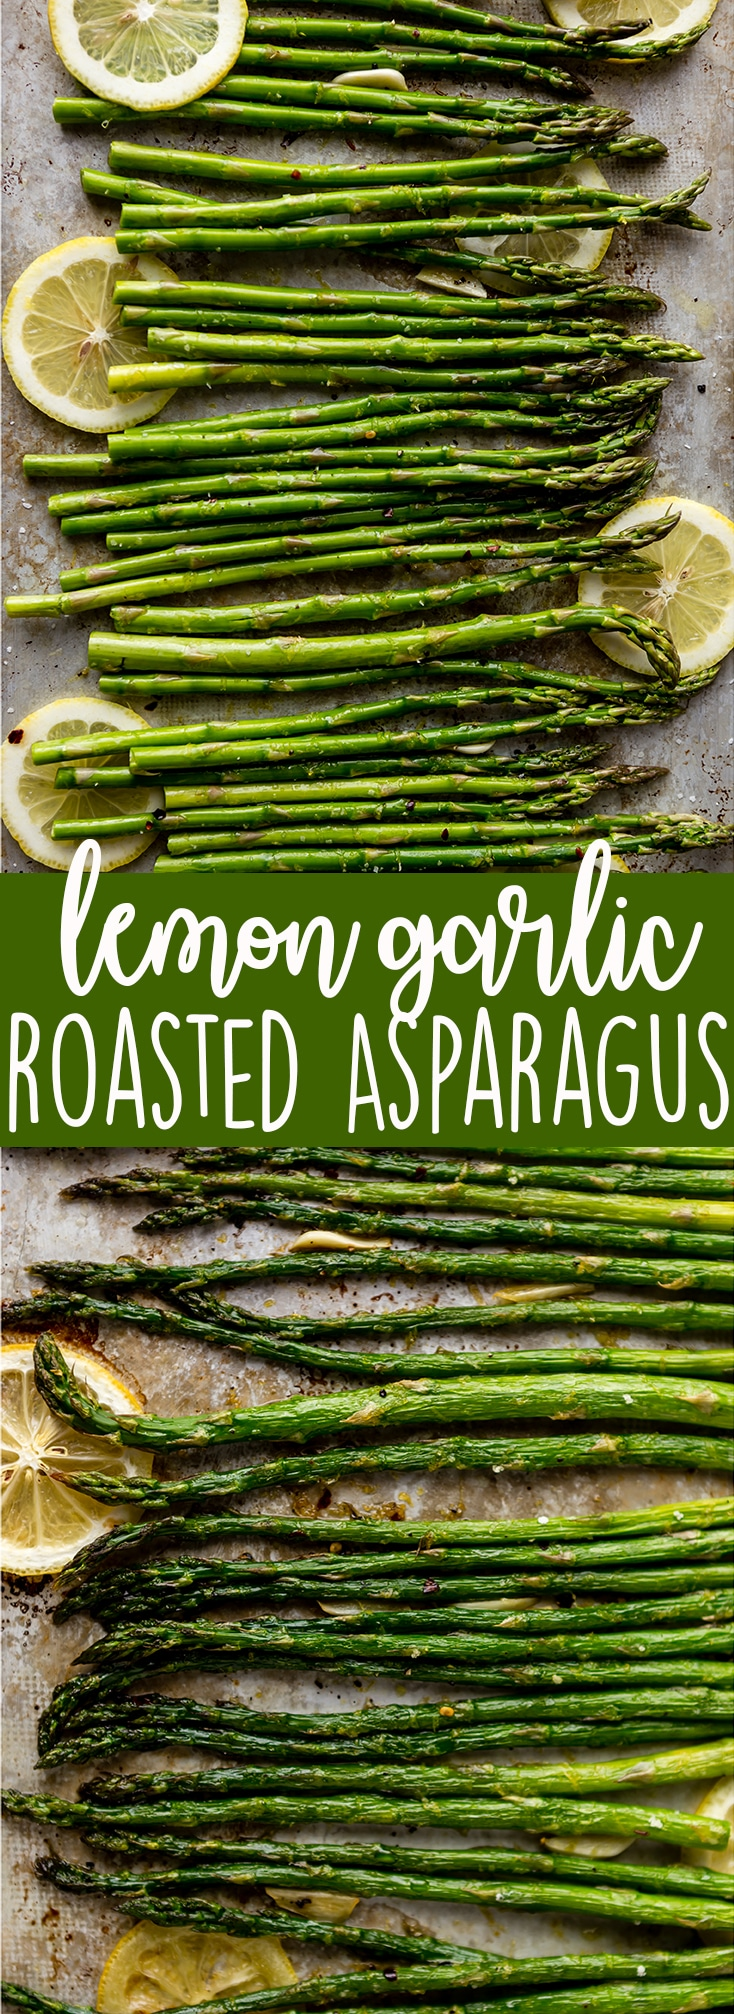 Lemon Garlic Roasted Asparagus long